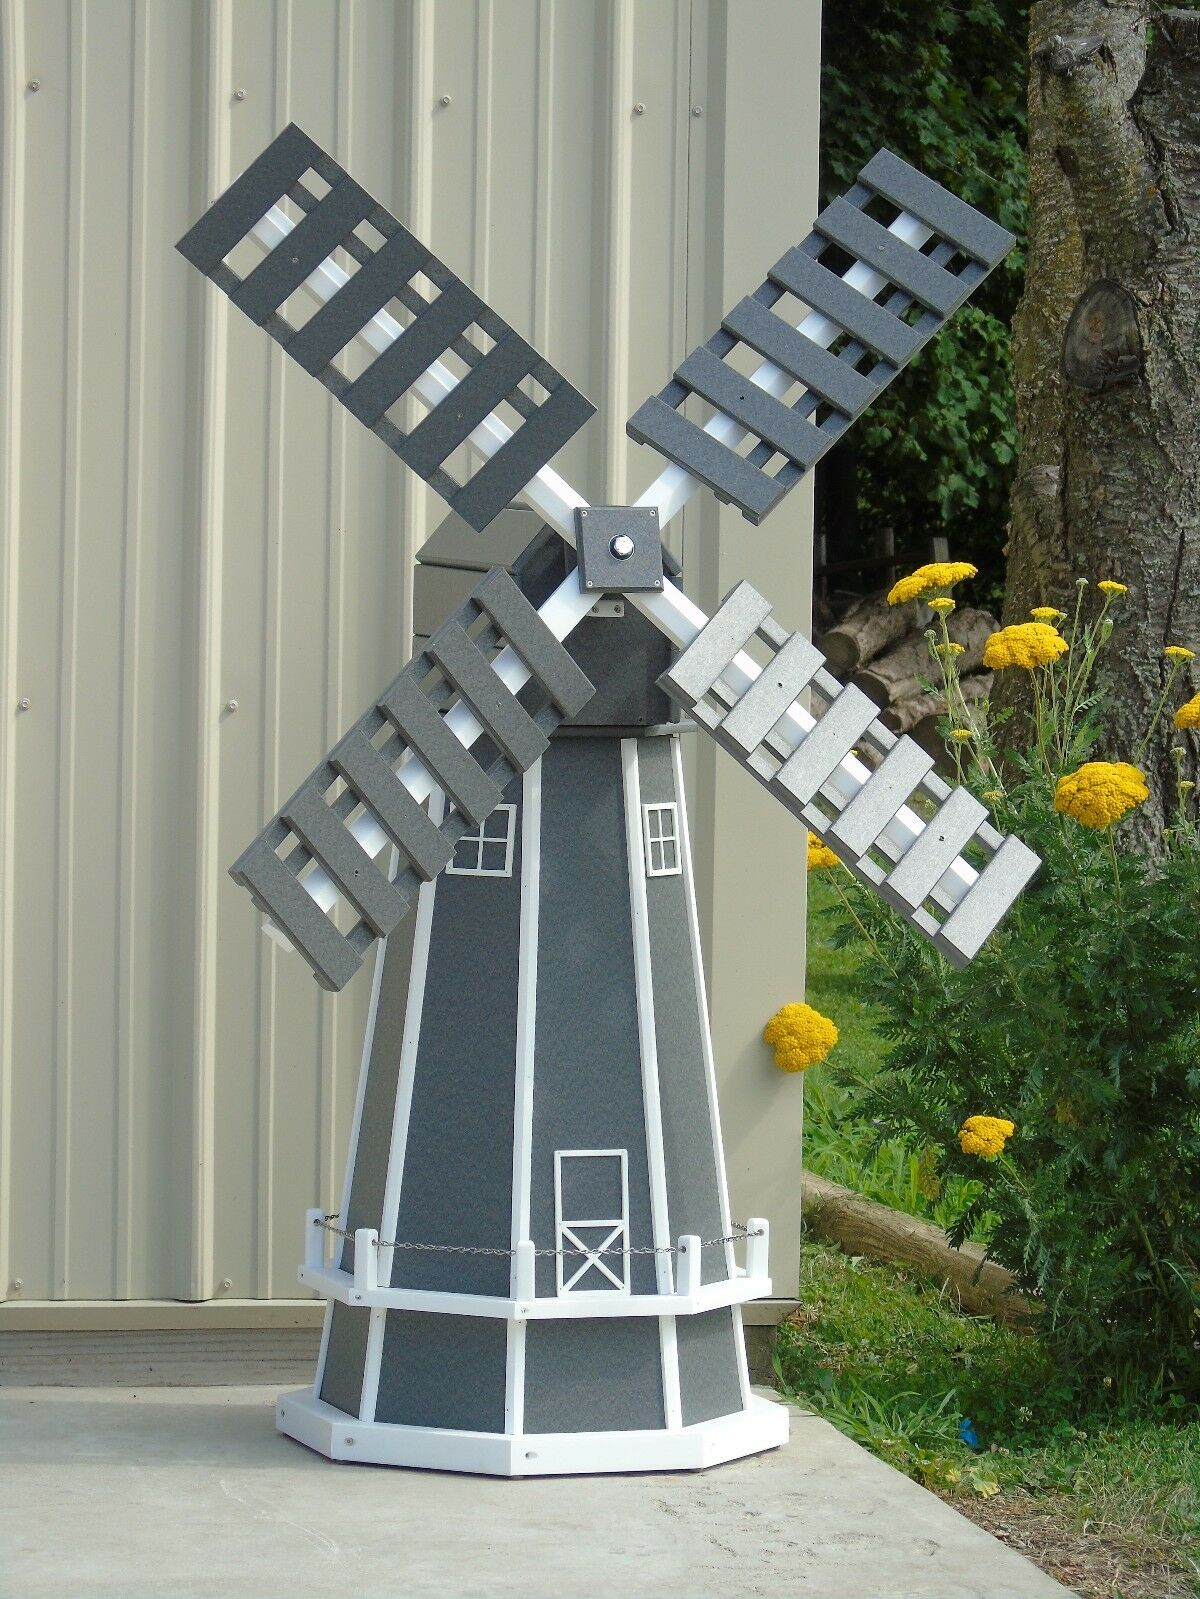 5 ft. Octagon (8 sided) Poly Dutch Windmill (Gray with White Trim)